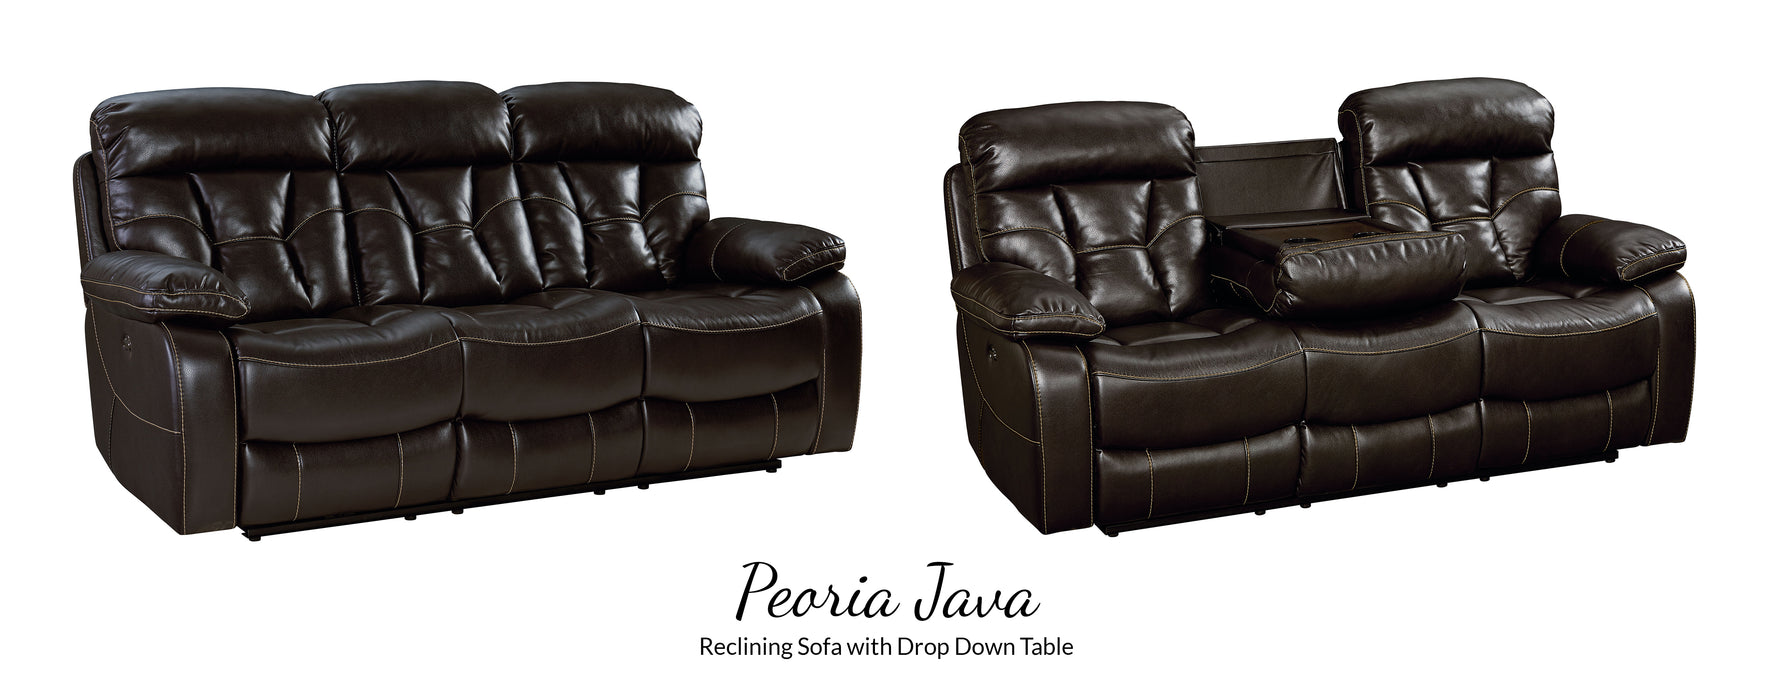 Enjoyable Peoria Java Reclining Sofa W Drop Down Table Gmtry Best Dining Table And Chair Ideas Images Gmtryco